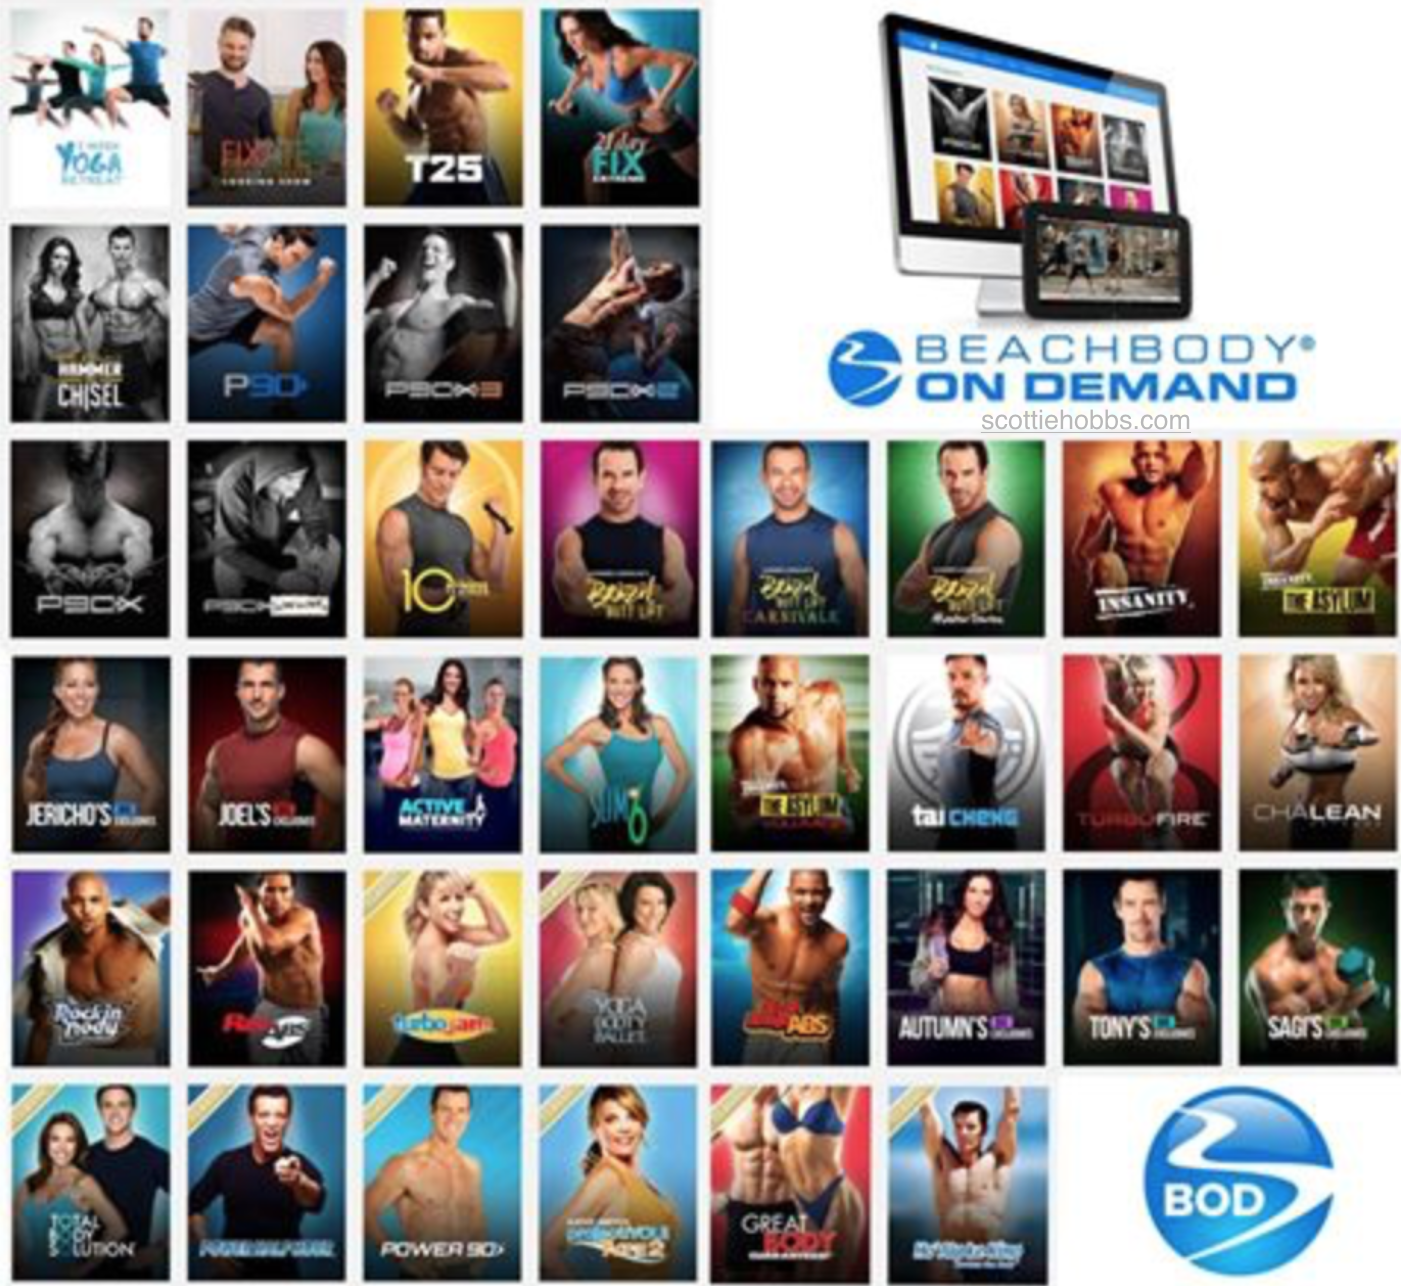 How to stream Beachbody on Demand